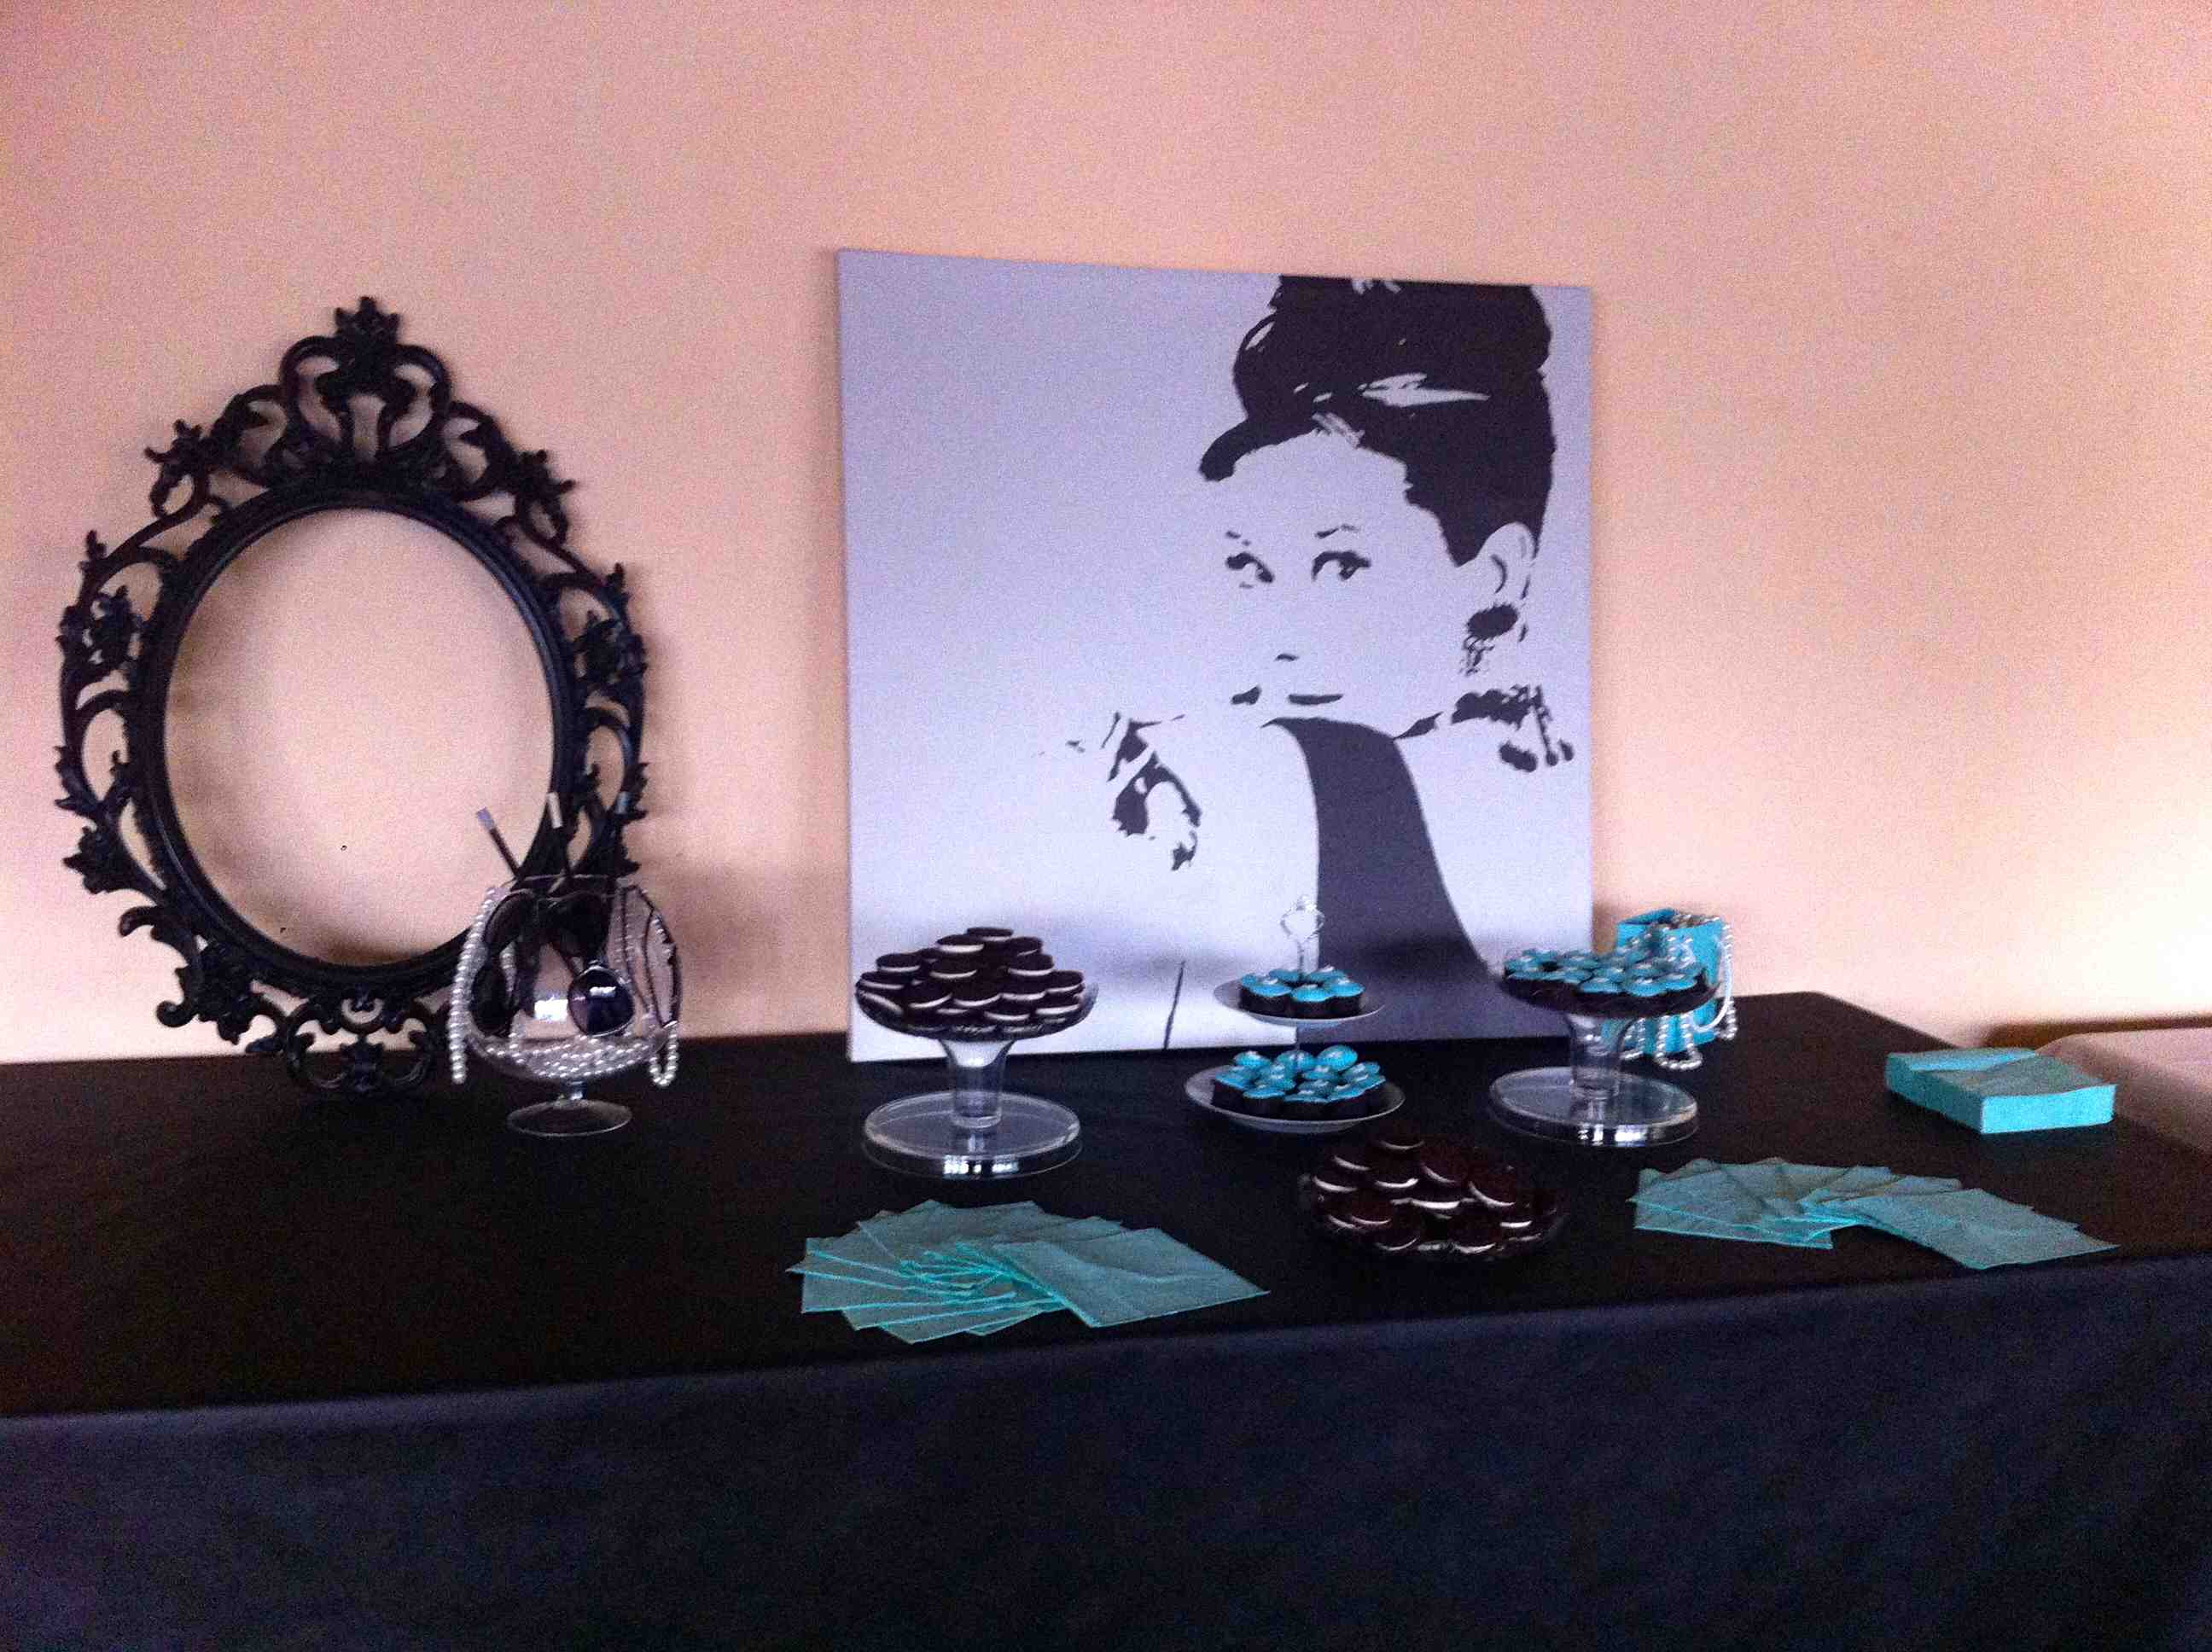 Preferenza Breakfast at Tiffany's 18th Birthday Party | Le Jour du Oui JM05